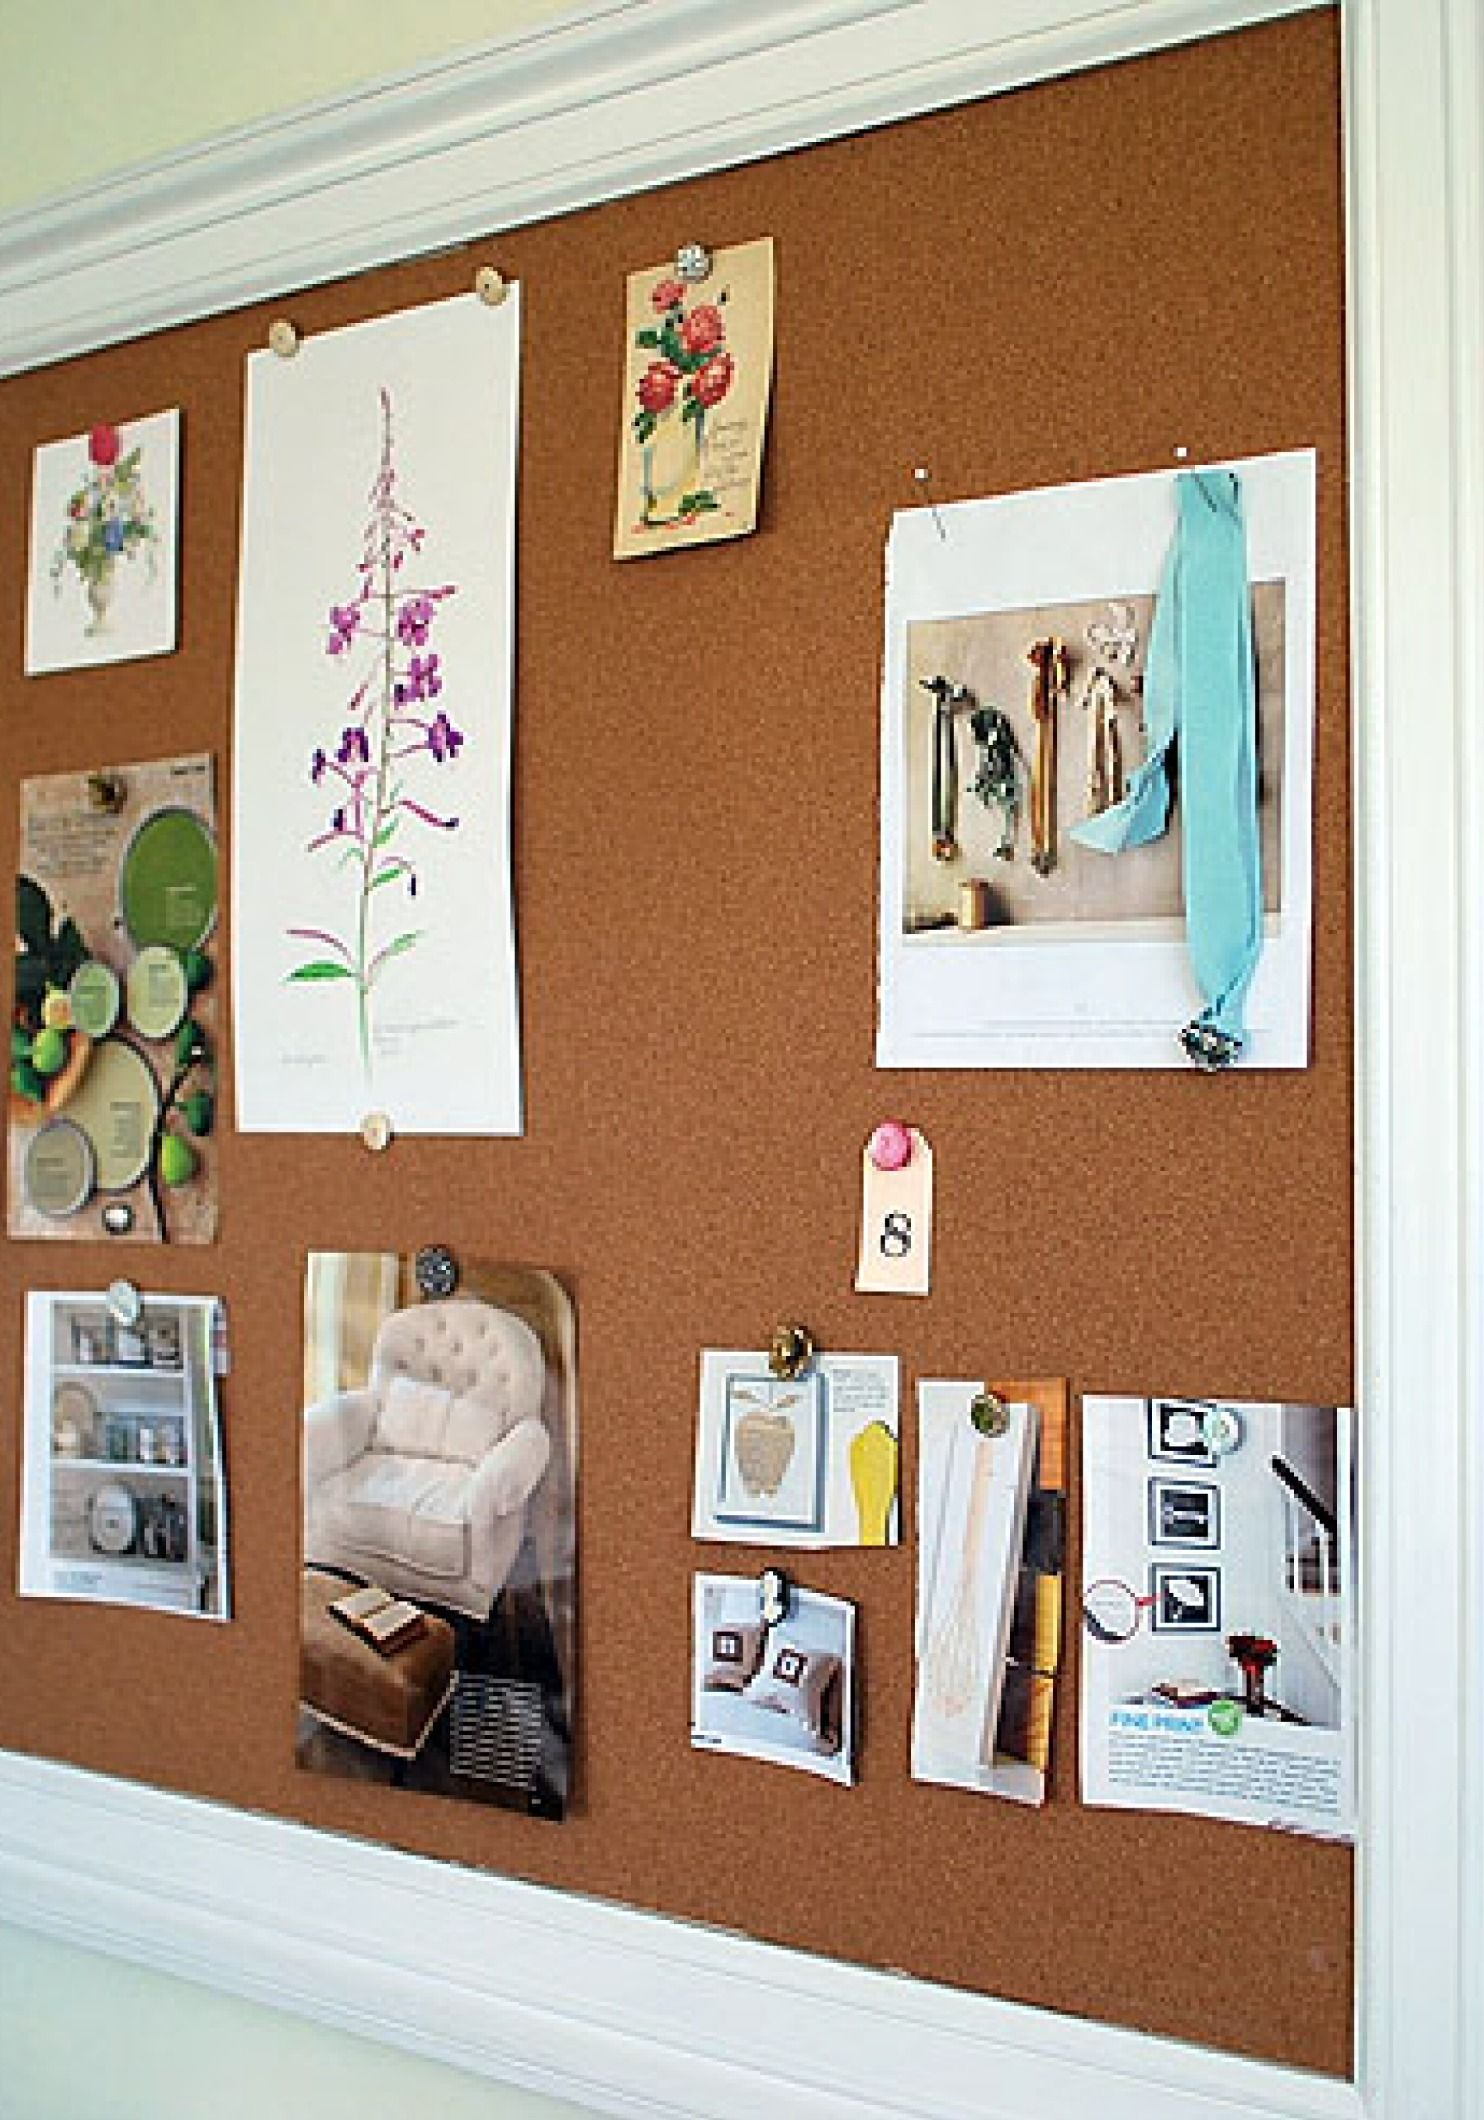 How To Make A Framed Bulletin Board Cork Board Ideas For